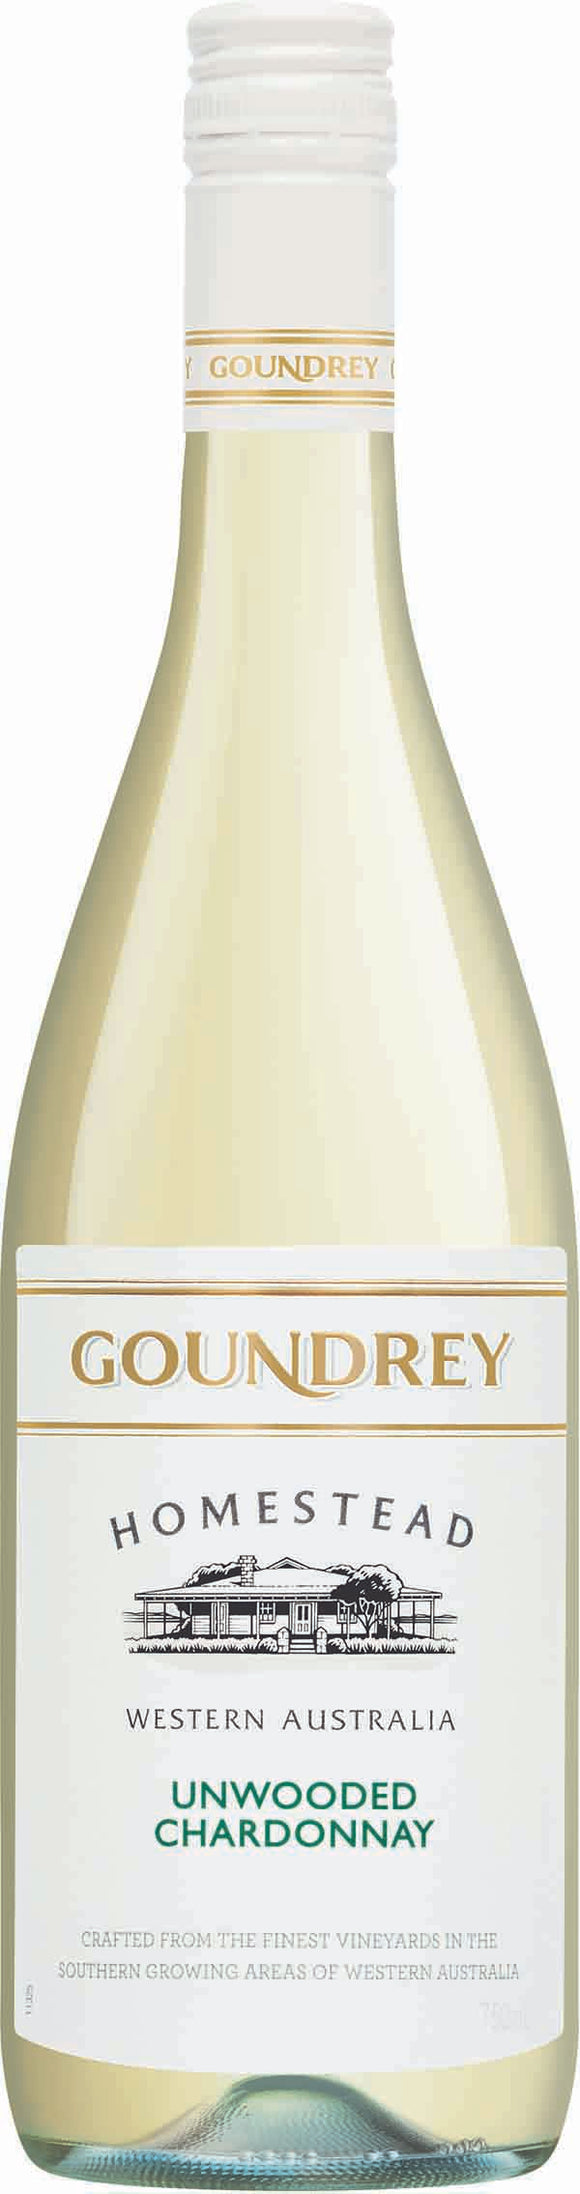 Box of 6 Goundrey Homestead Unwooded Chardonnay